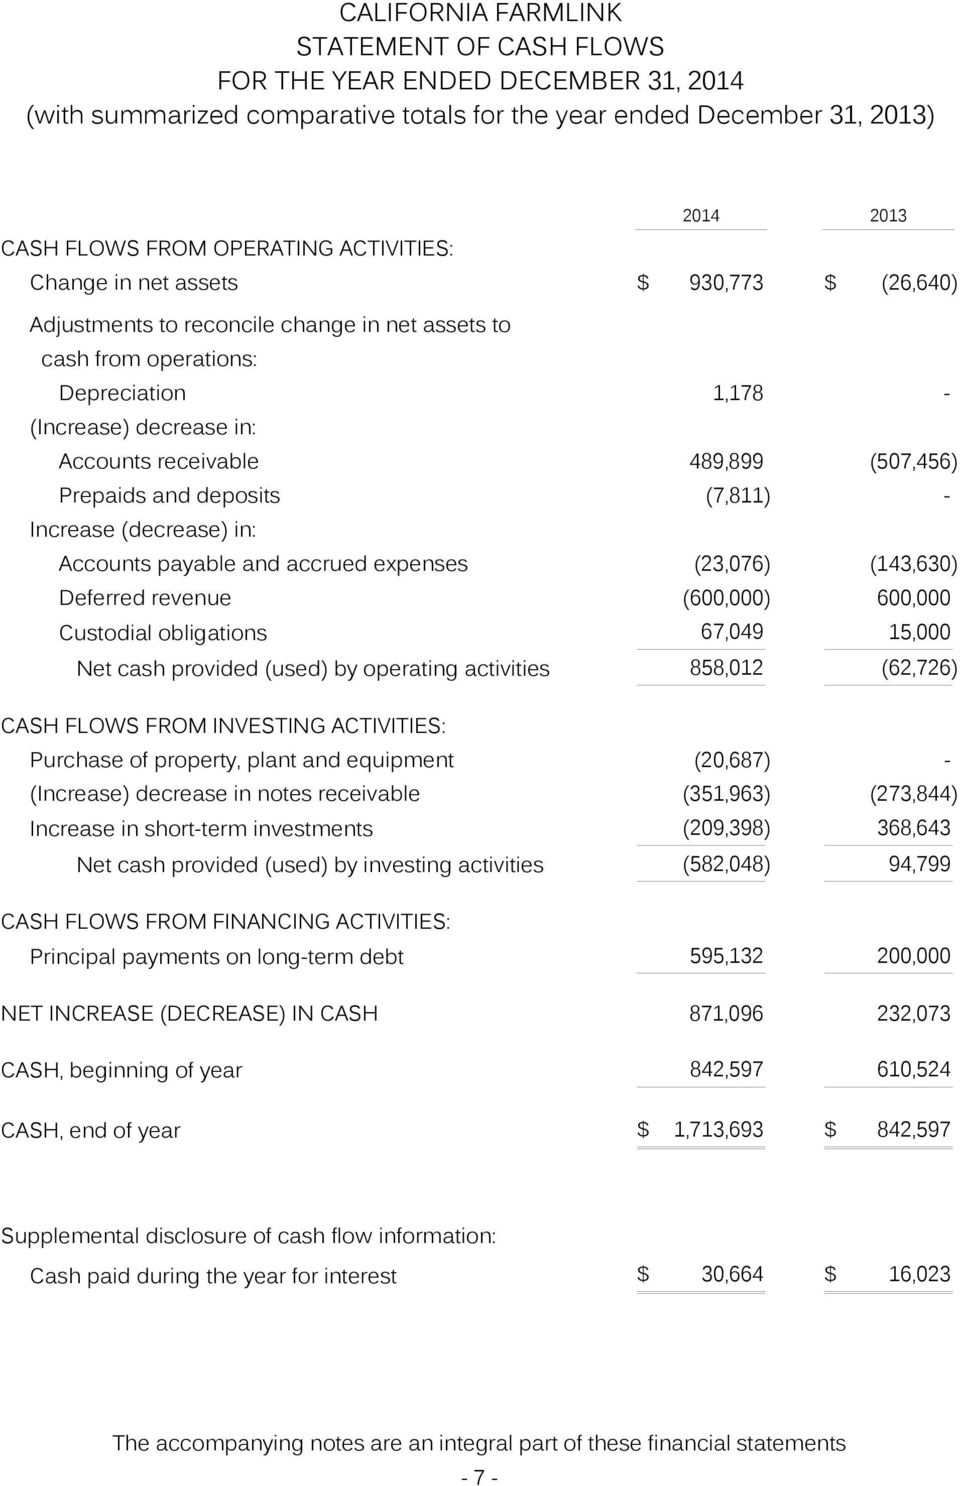 Increase (decrease) in: Accounts payable and accrued expenses (23,076) (143,630) Deferred revenue (600,000) 600,000 Custodial obligations 67,049 15,000 Net cash provided (used) by operating